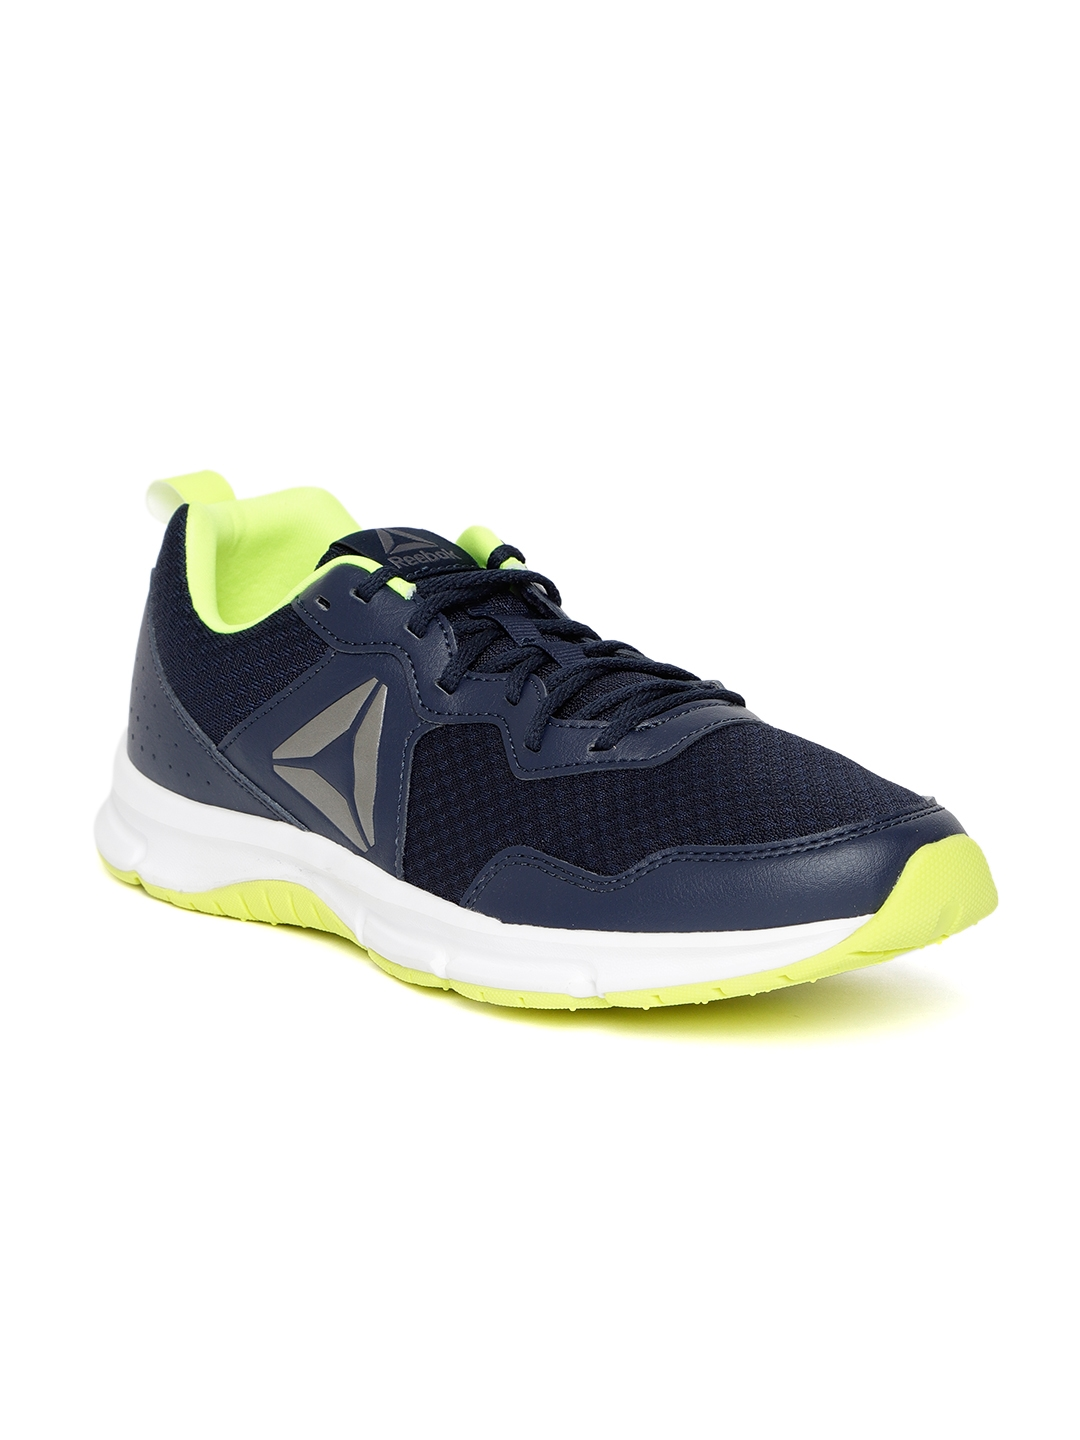 Buy Reebok Men Navy Express Runner 2.0 Running Shoes - Sports Shoes ... ea4c92735